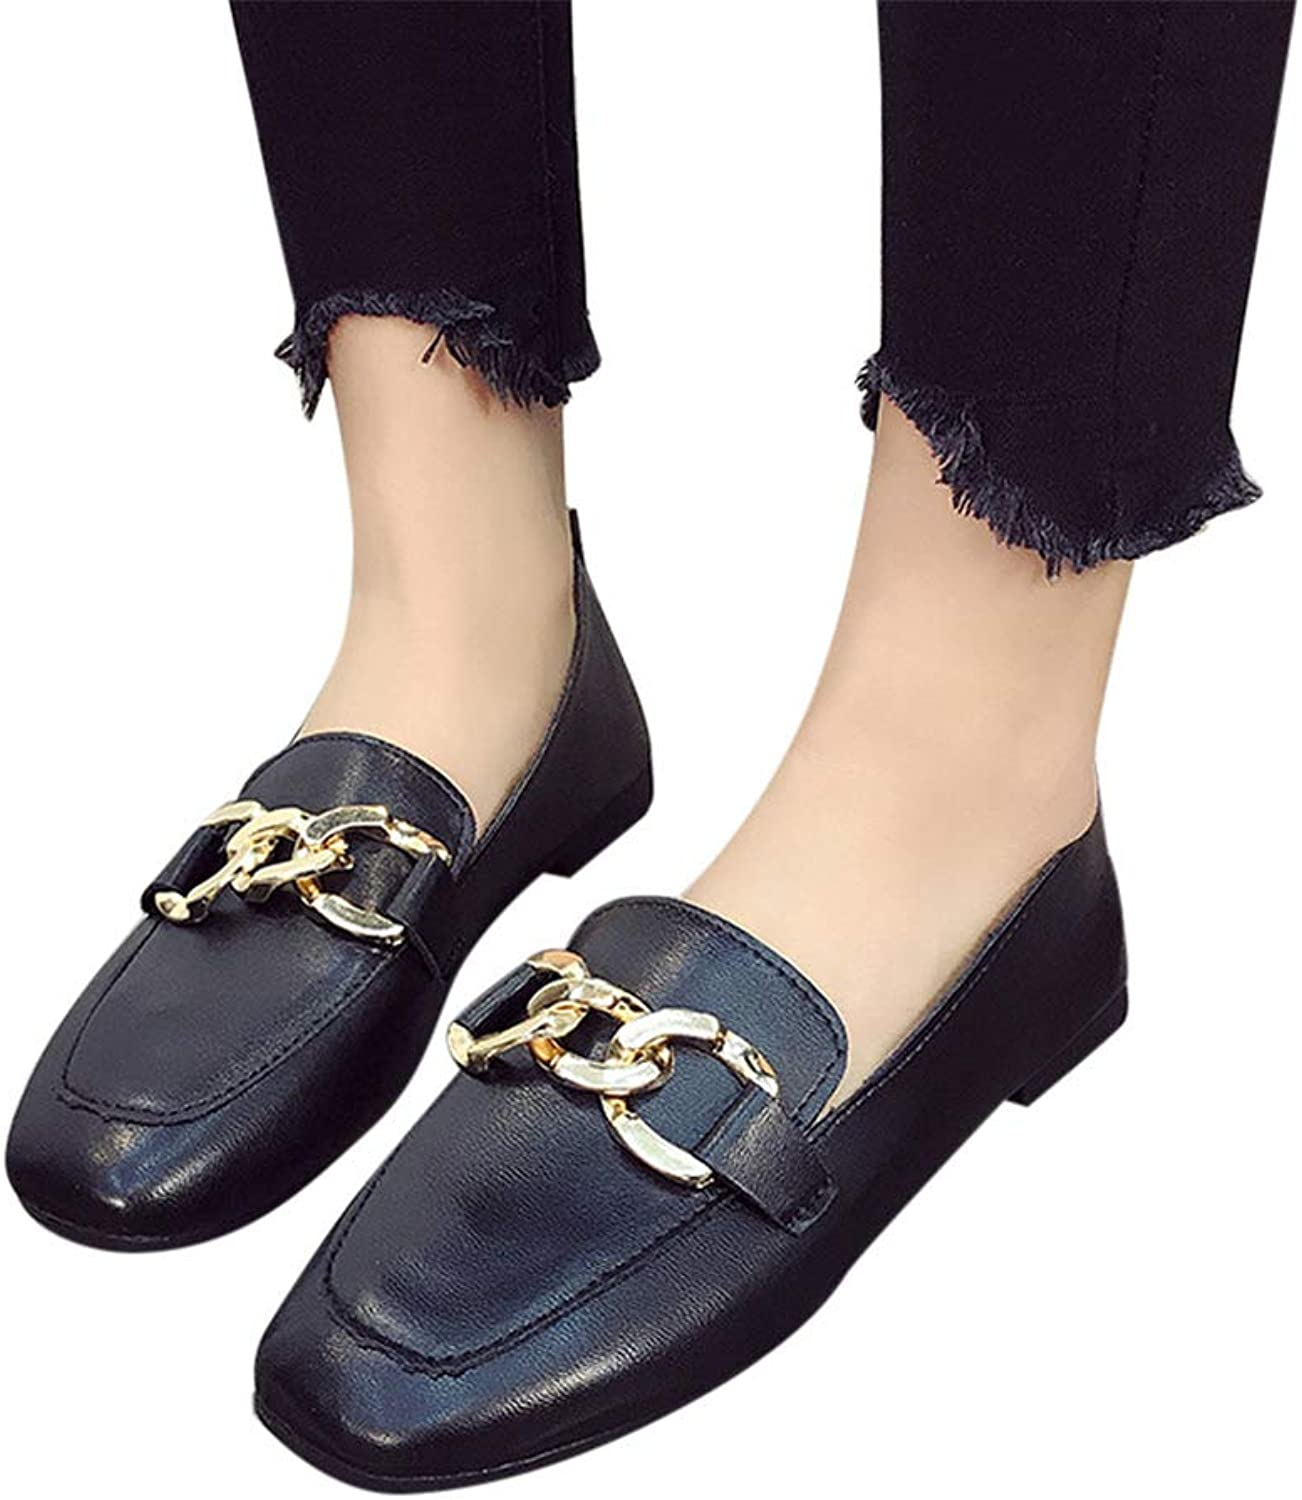 SamaTung Women Flats Candy color shoes Woman Shallow Mouth Loafers Fashion Flat Casual shoes